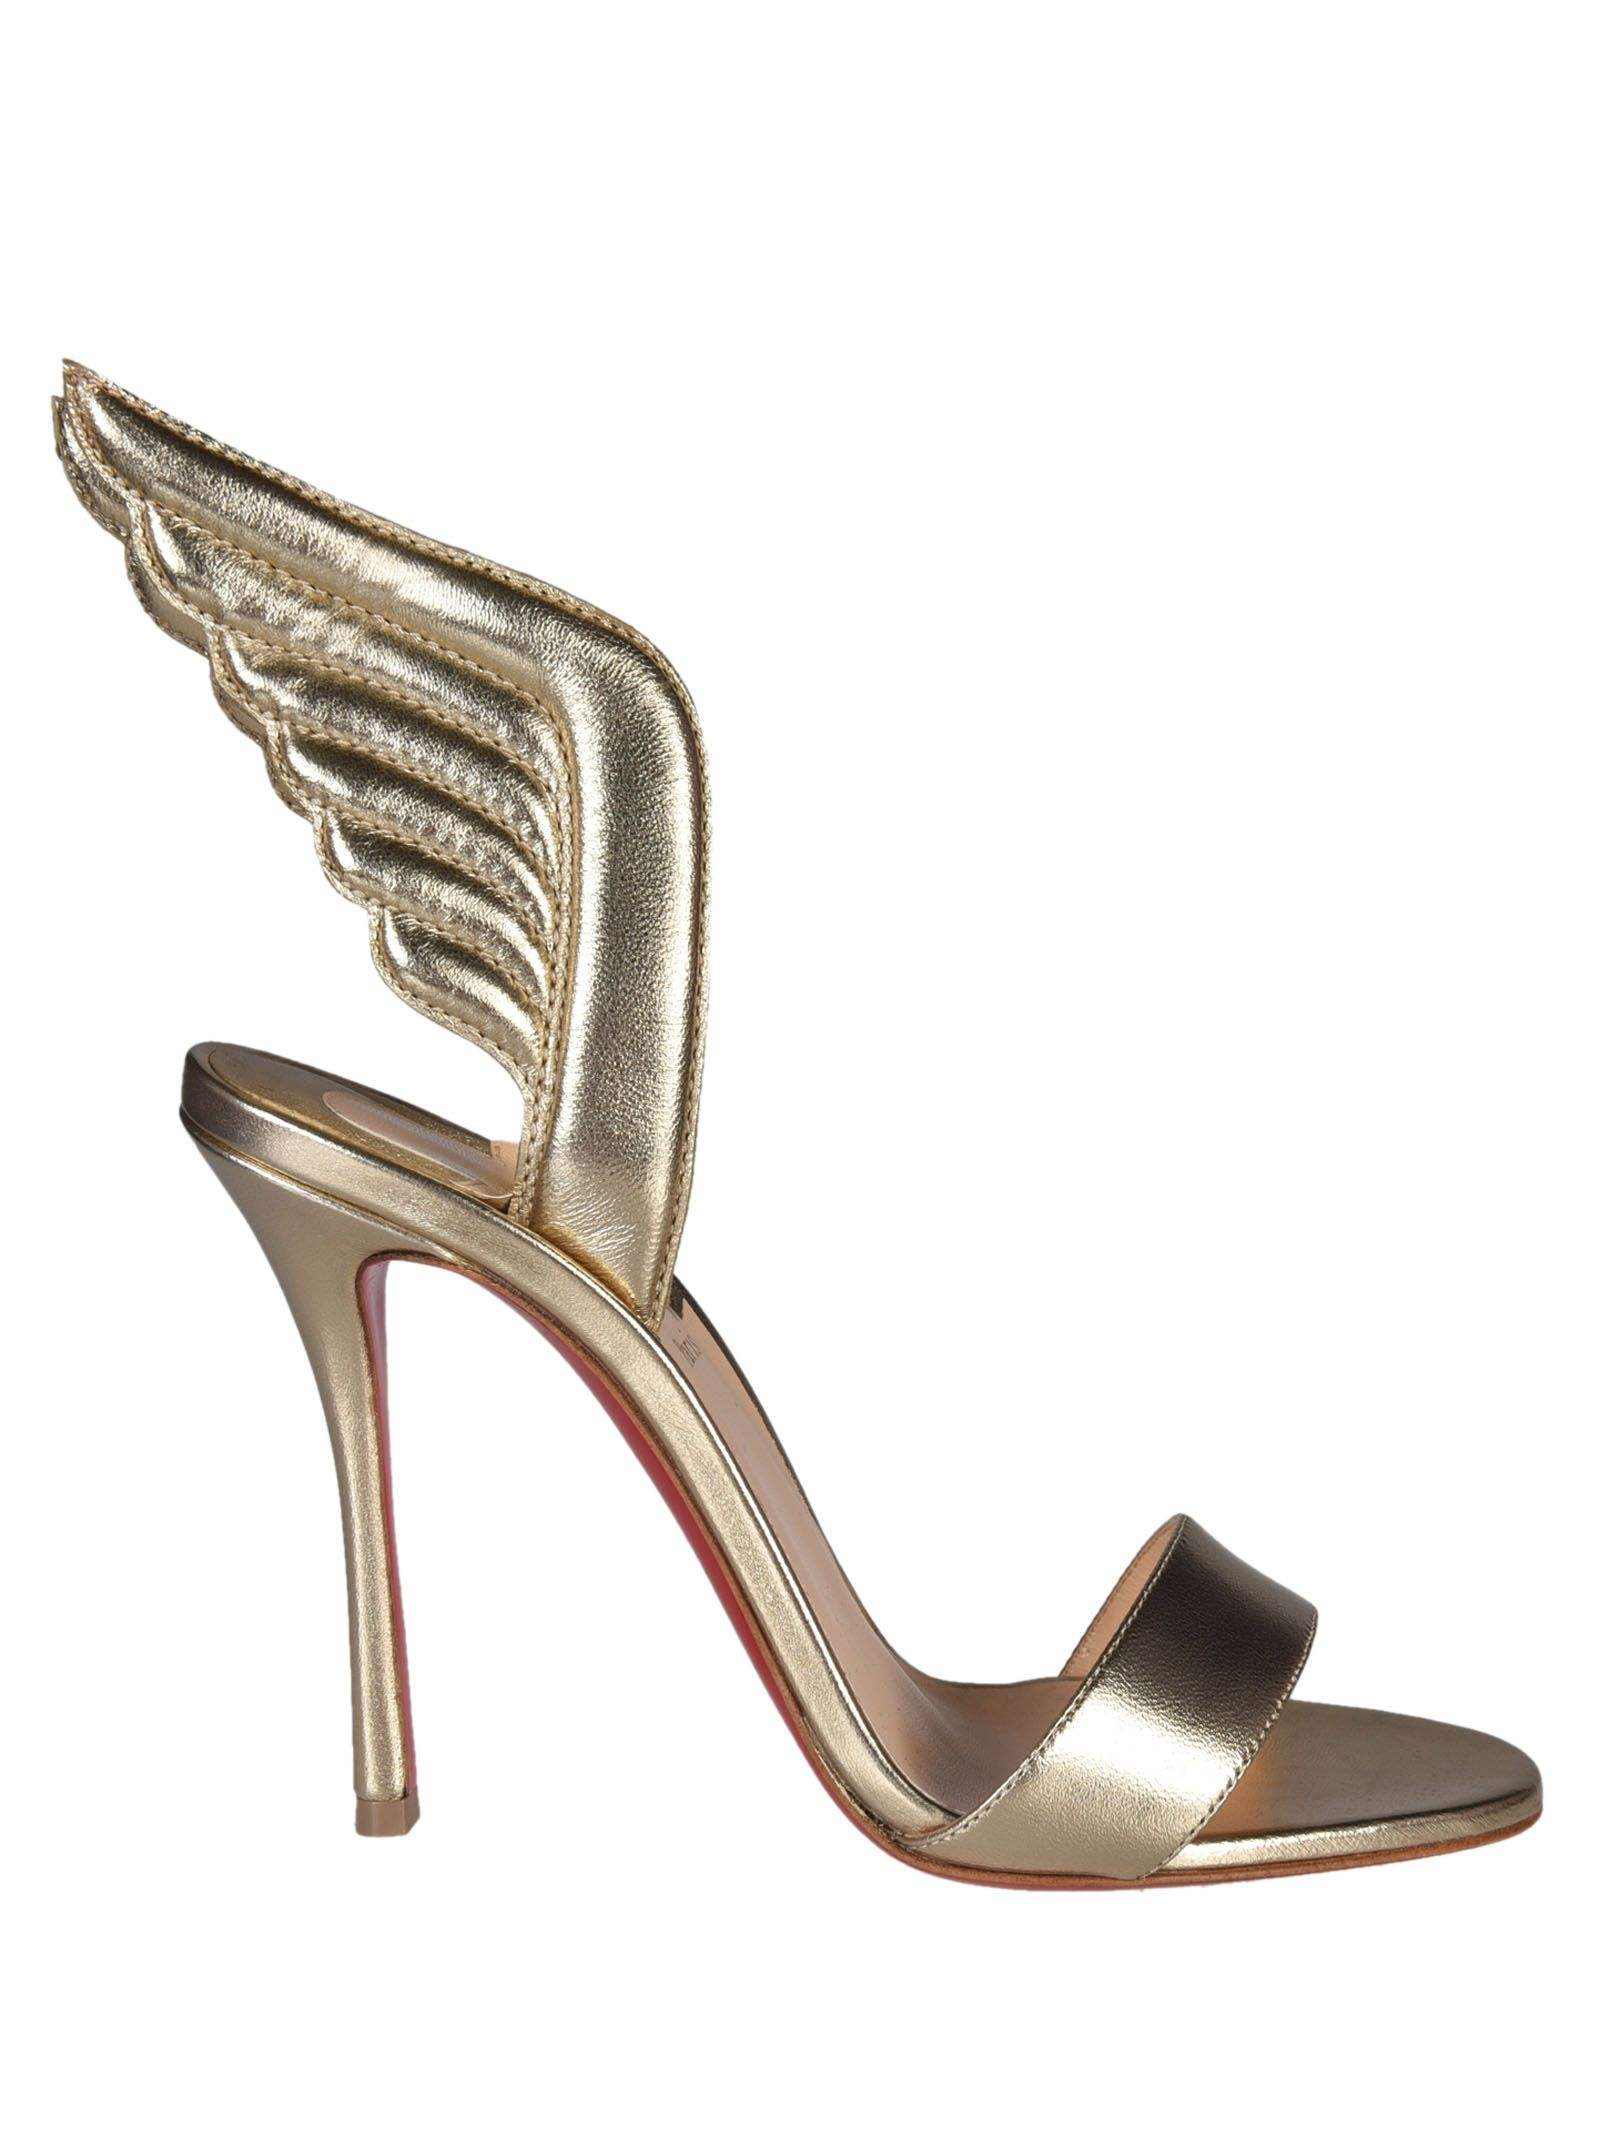 Samotresse Sandals from Christian Louboutin: Light Gold Samotresse Sandals with open toe, stiletto heel, brand insole and wings detailed design.